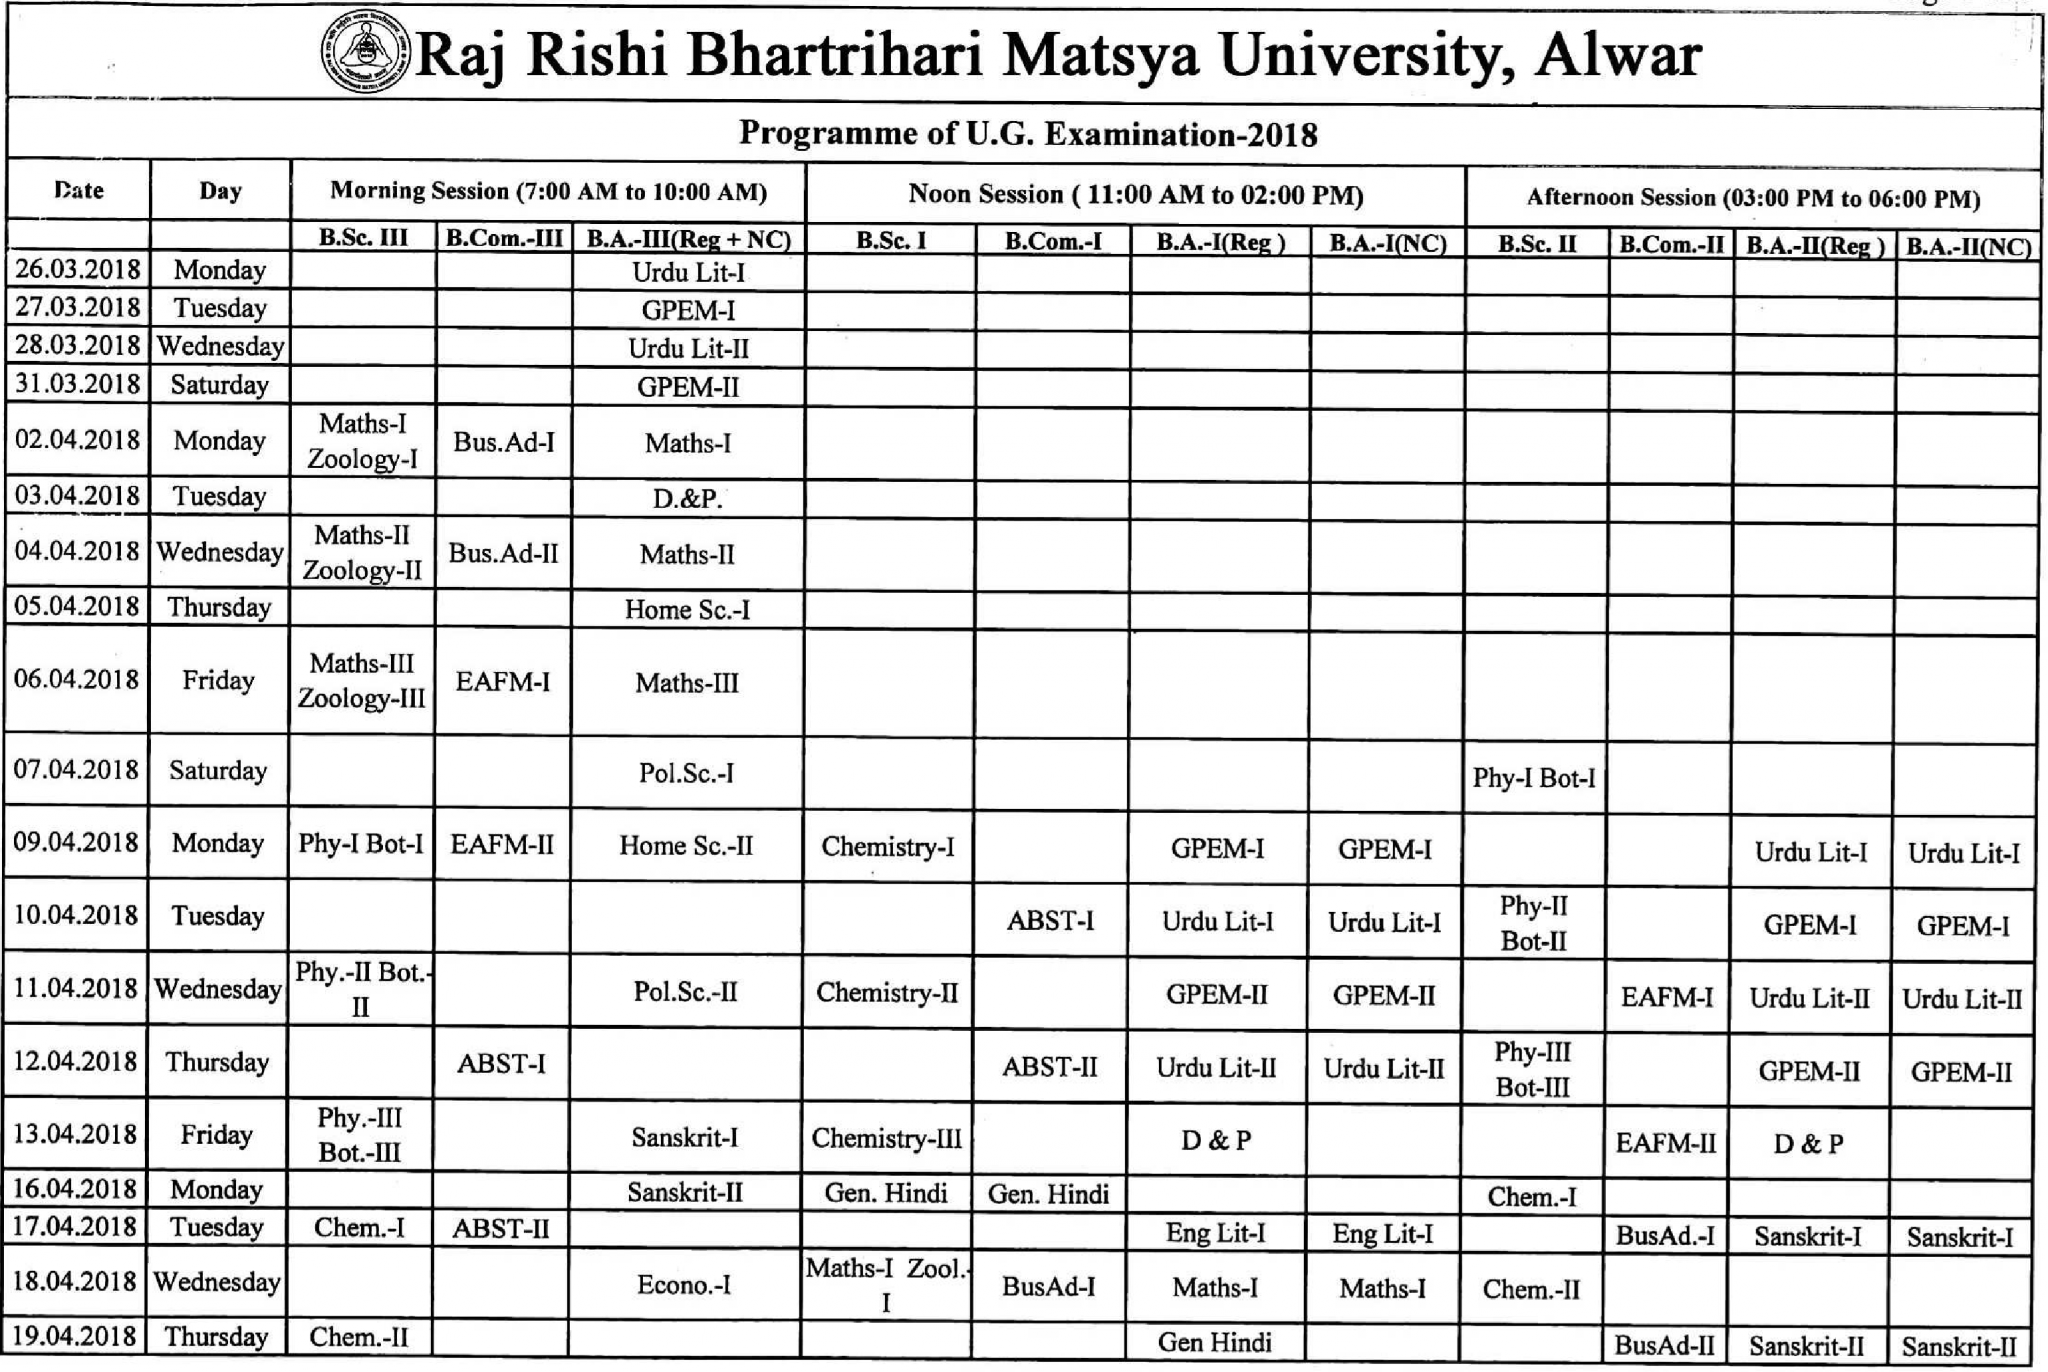 rrbmu time table 2019